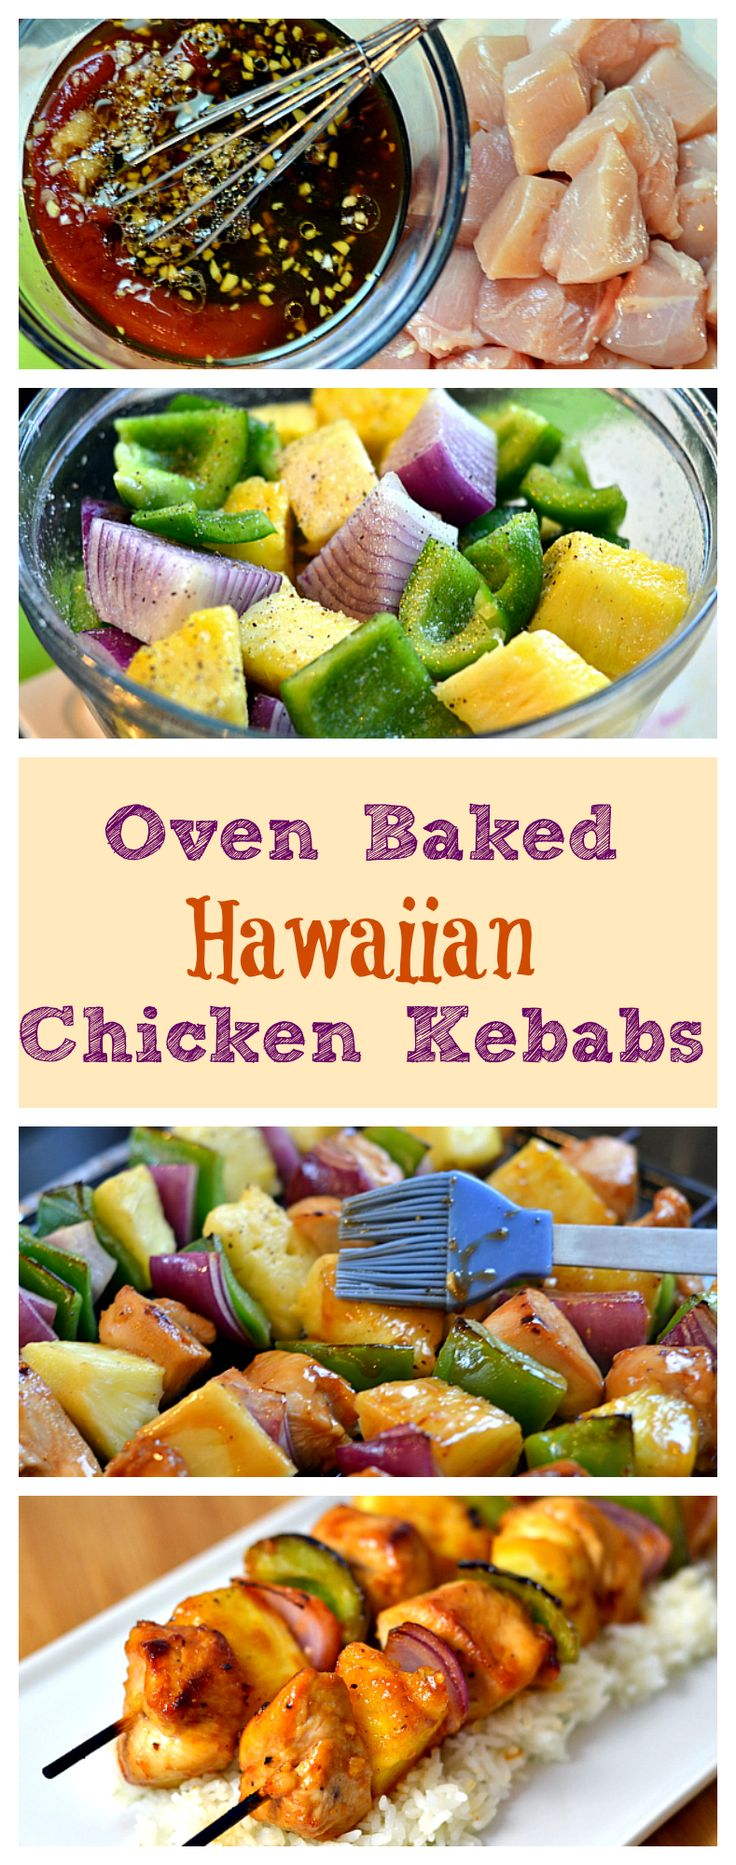 These delicious Oven Baked Hawaiian Chicken Kebabs will bring a taste of the islands home quick, easy, and grill-free!